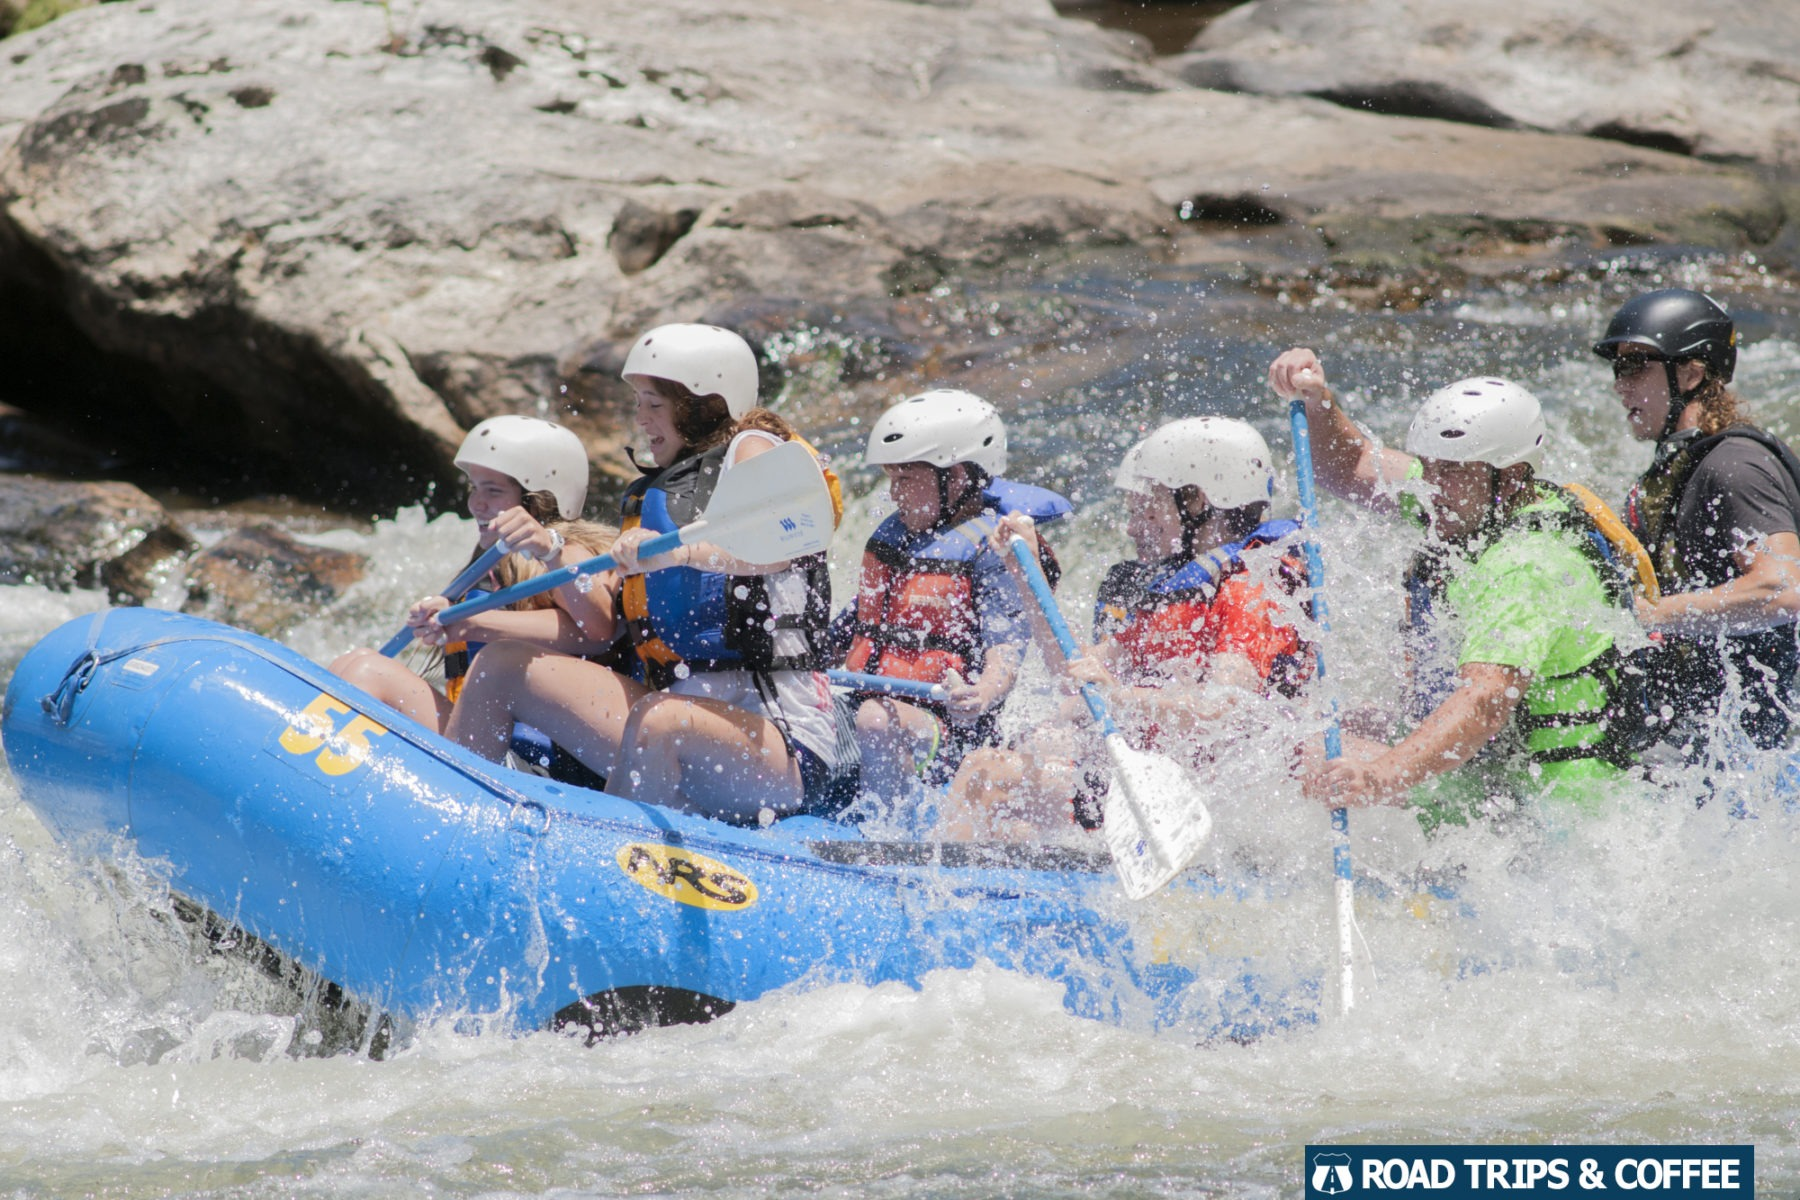 A boat full of rafters enjoy the spray from the whitewater rapids along the Chattooga River in South Carolina.